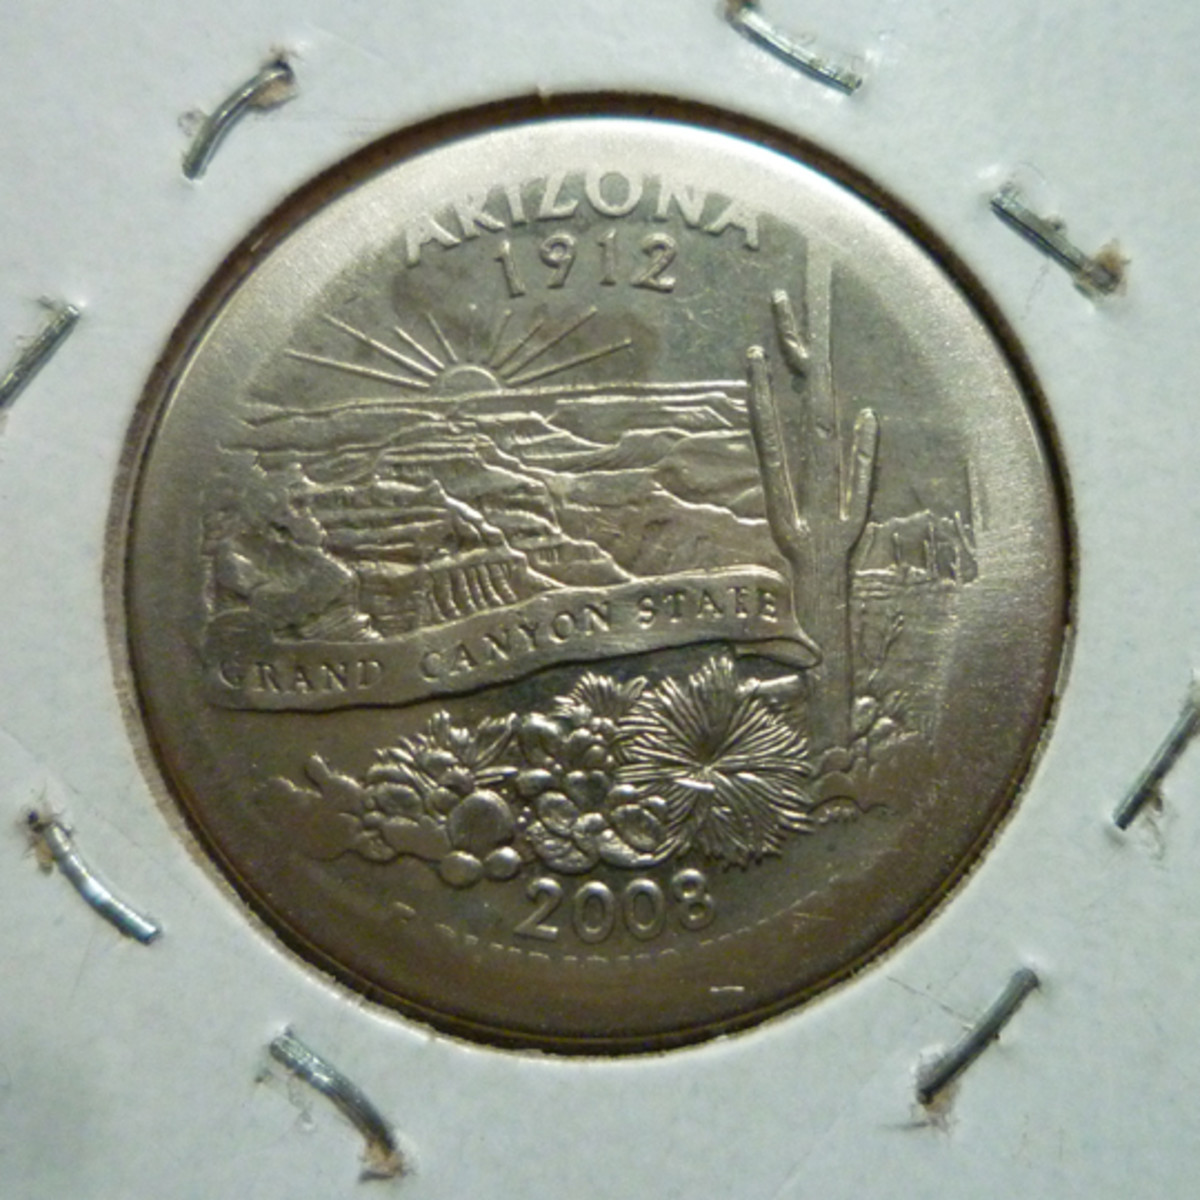 Arizona State Quarter Broad Strike Error. Reverse. I found this coin in circulation.